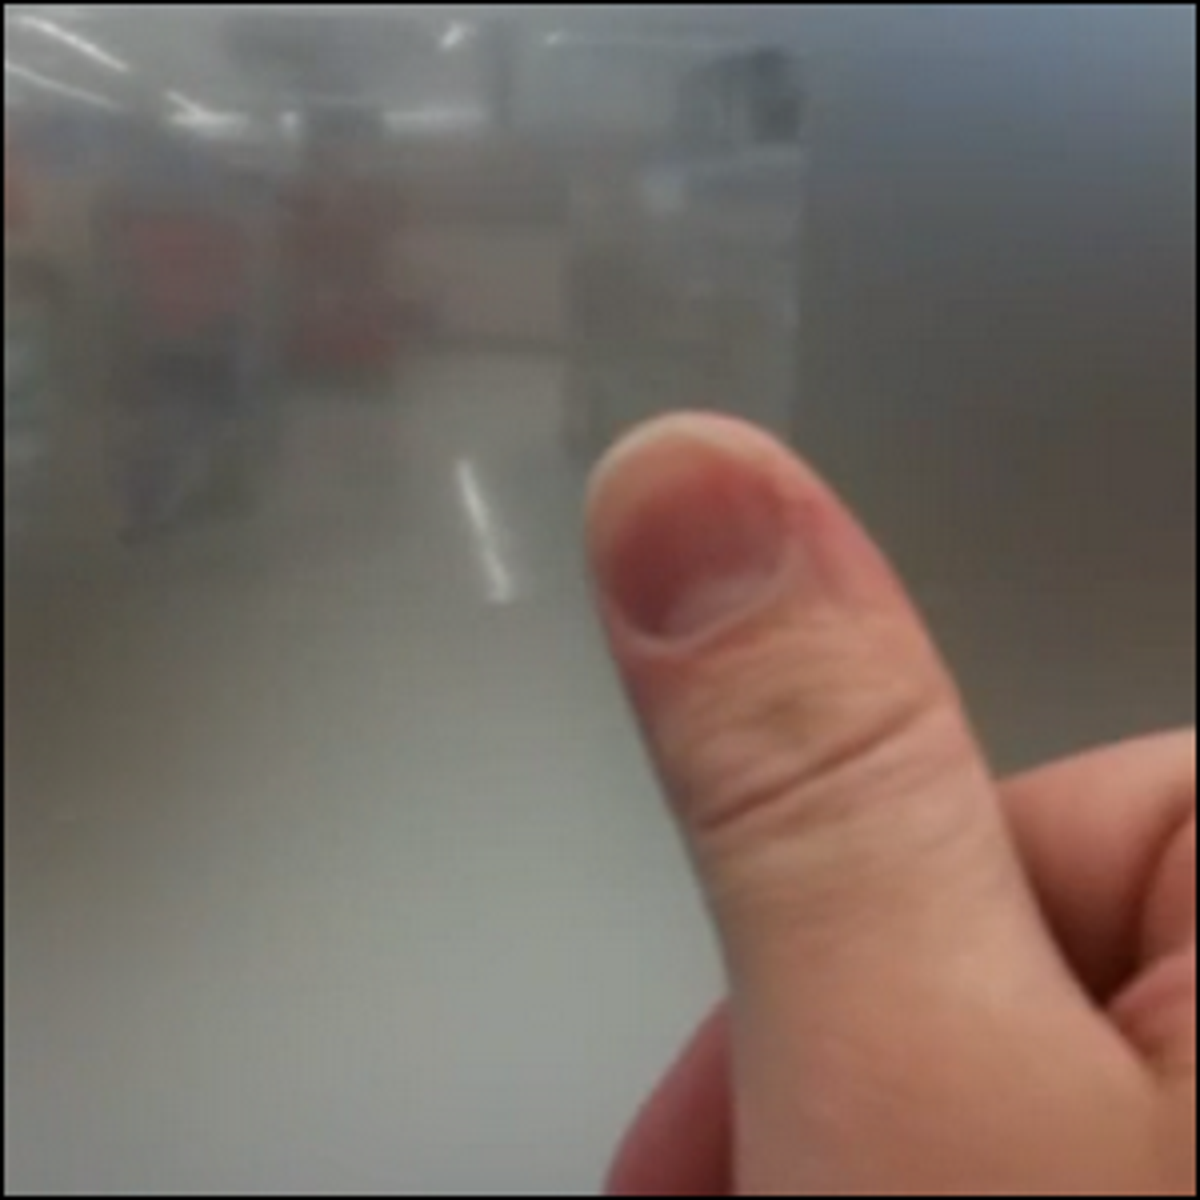 An example of using cellophane tape to peek through frosted glass.